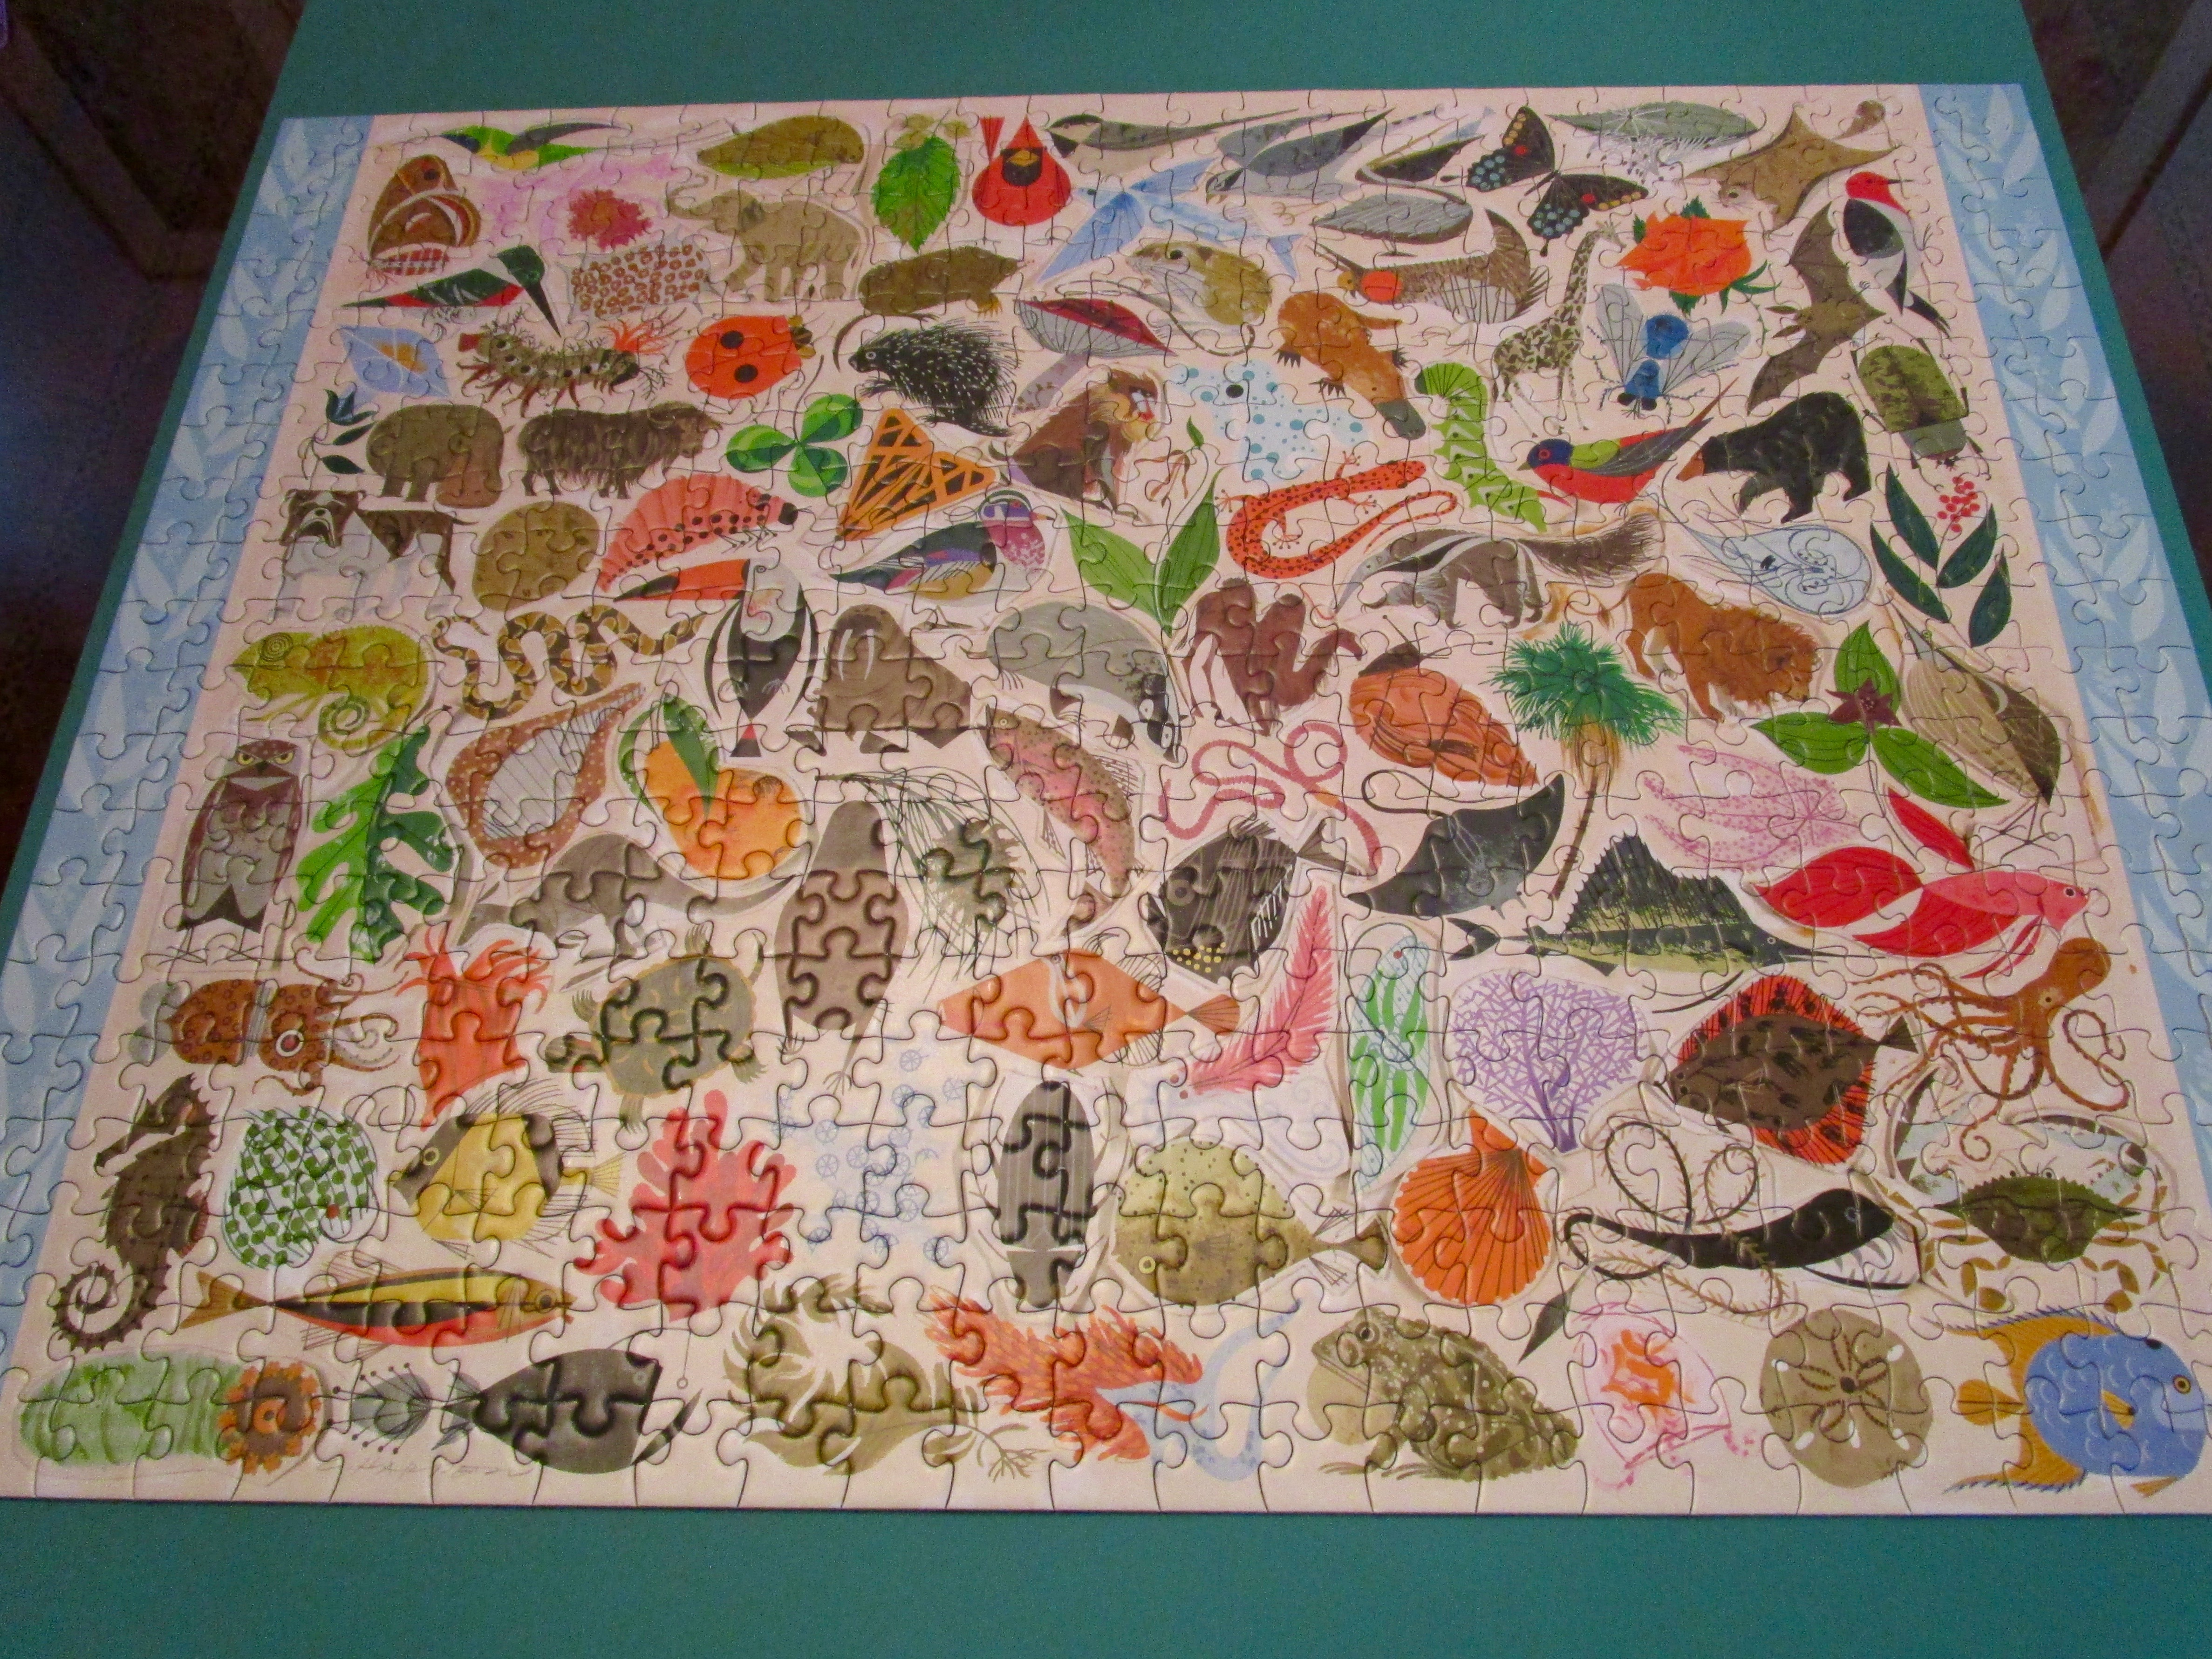 OCTOBERS JIGSAW PUZZLE: THE TREE OF LIFE BY CHARLEY HARPER  (GUYLA, This is headed your way.)